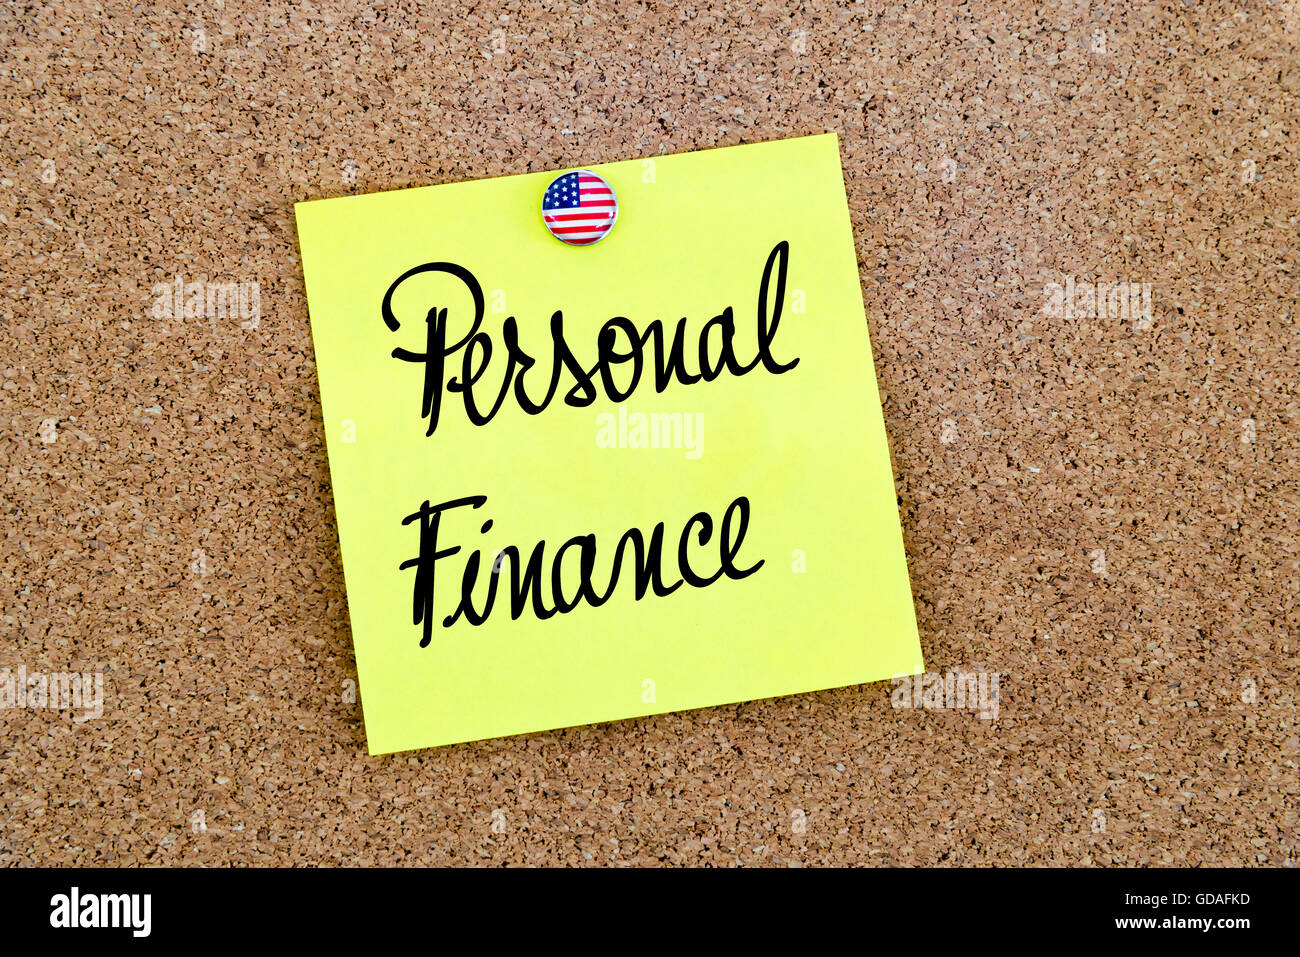 Written text Personal Finance over yellow paper note pinned on cork board - Stock Image